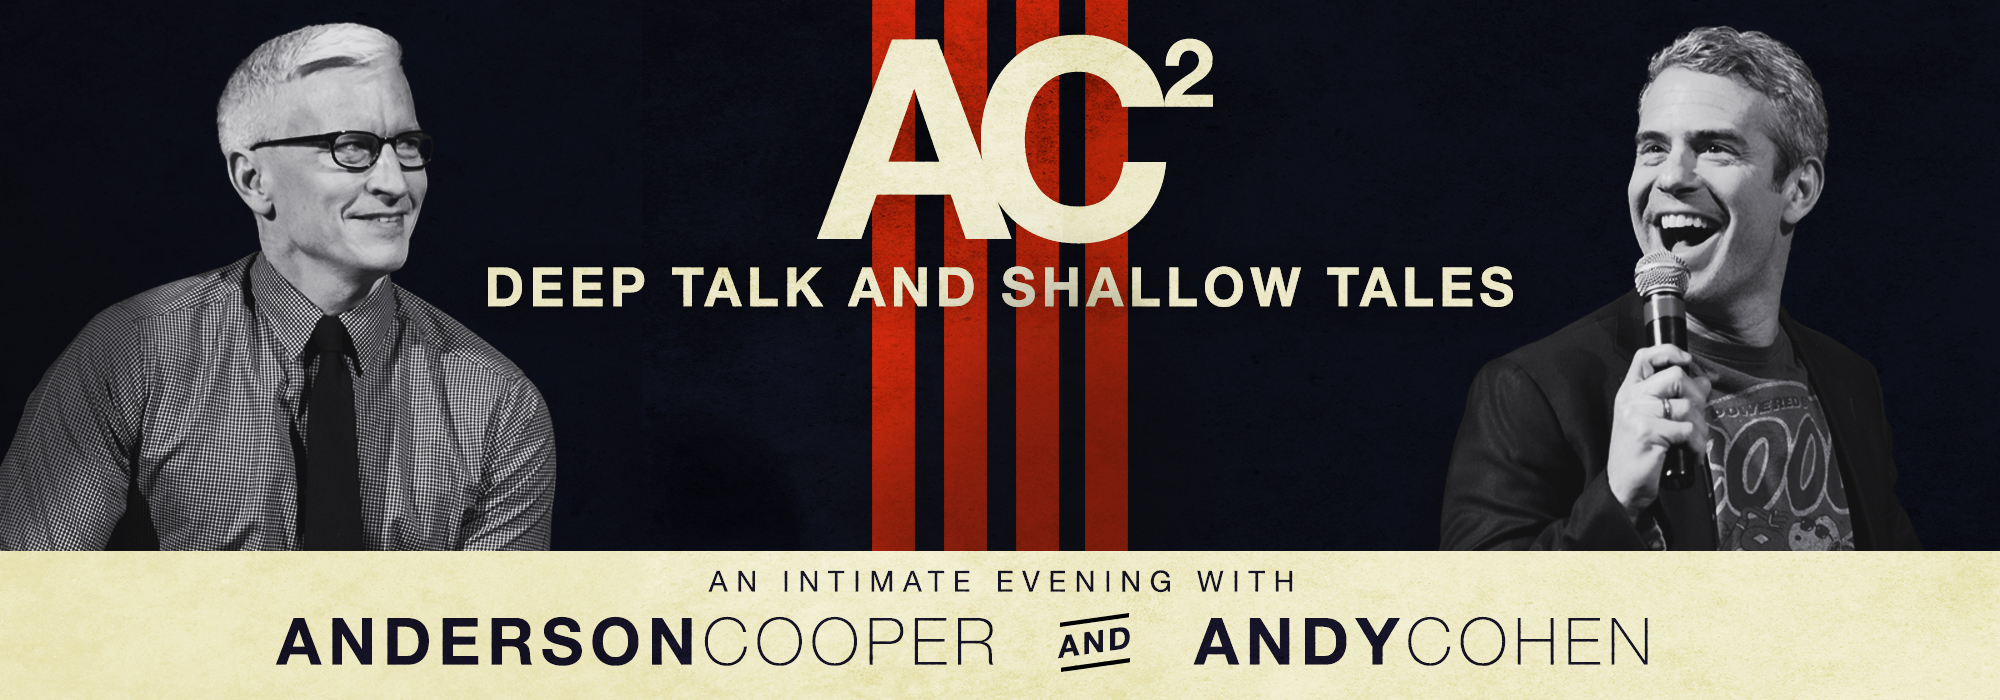 Ac2 An Intimate Evening With Anderson Cooper And Andy Cohen